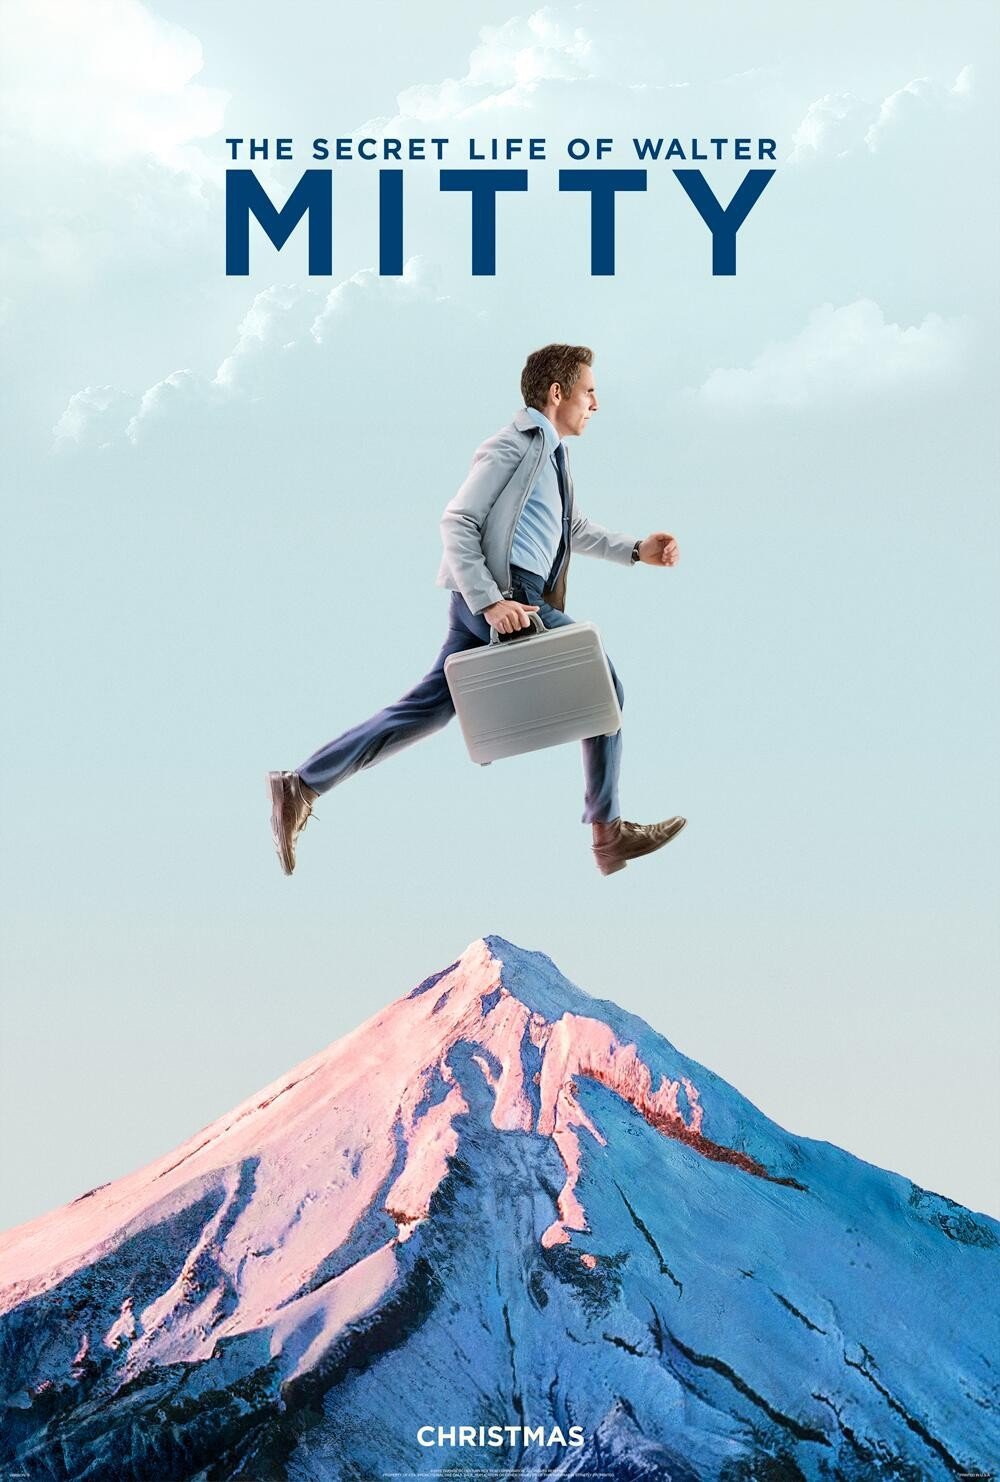 the-secret-life-of-walter-mitty-poster-mountain.jpg